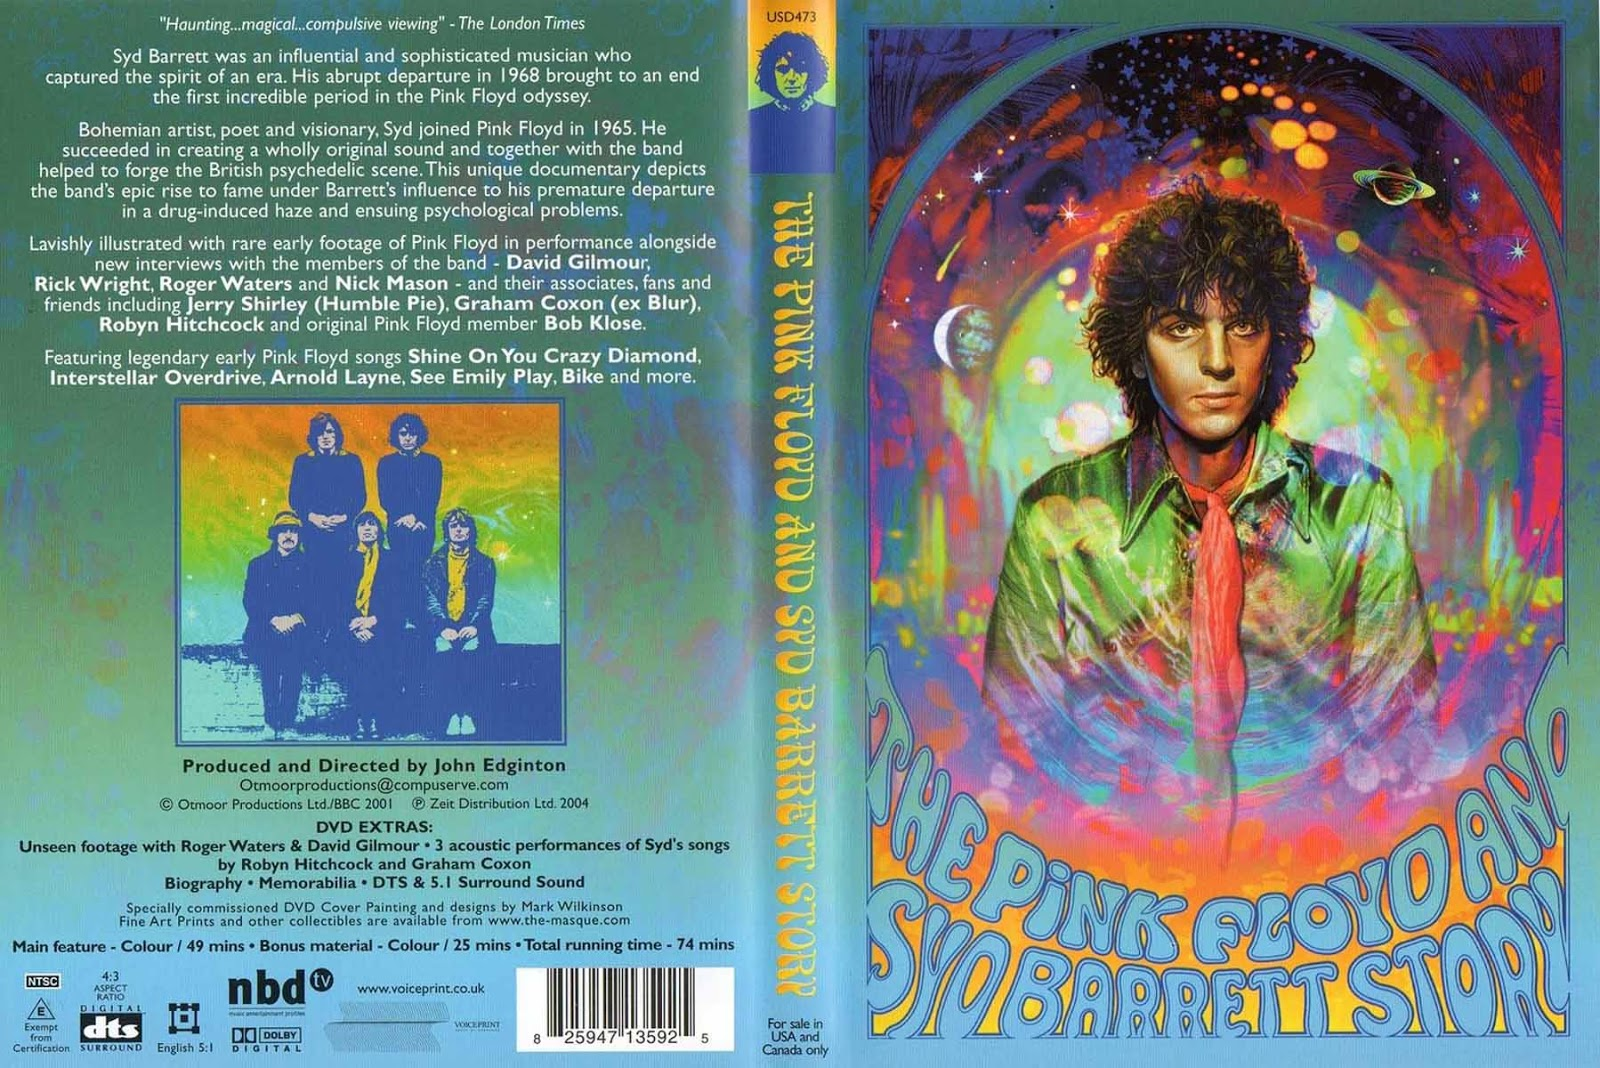 the syd barrett story Syd created music that was so abstract and transcendent that it is often misunderstood for a bunch of drug generated bullshit honoring rock bands and artists, pete townshend gave a speech honoring syd barrett, and telling a story where he told eric clapton that he had to come see this guy play, who was barrett.